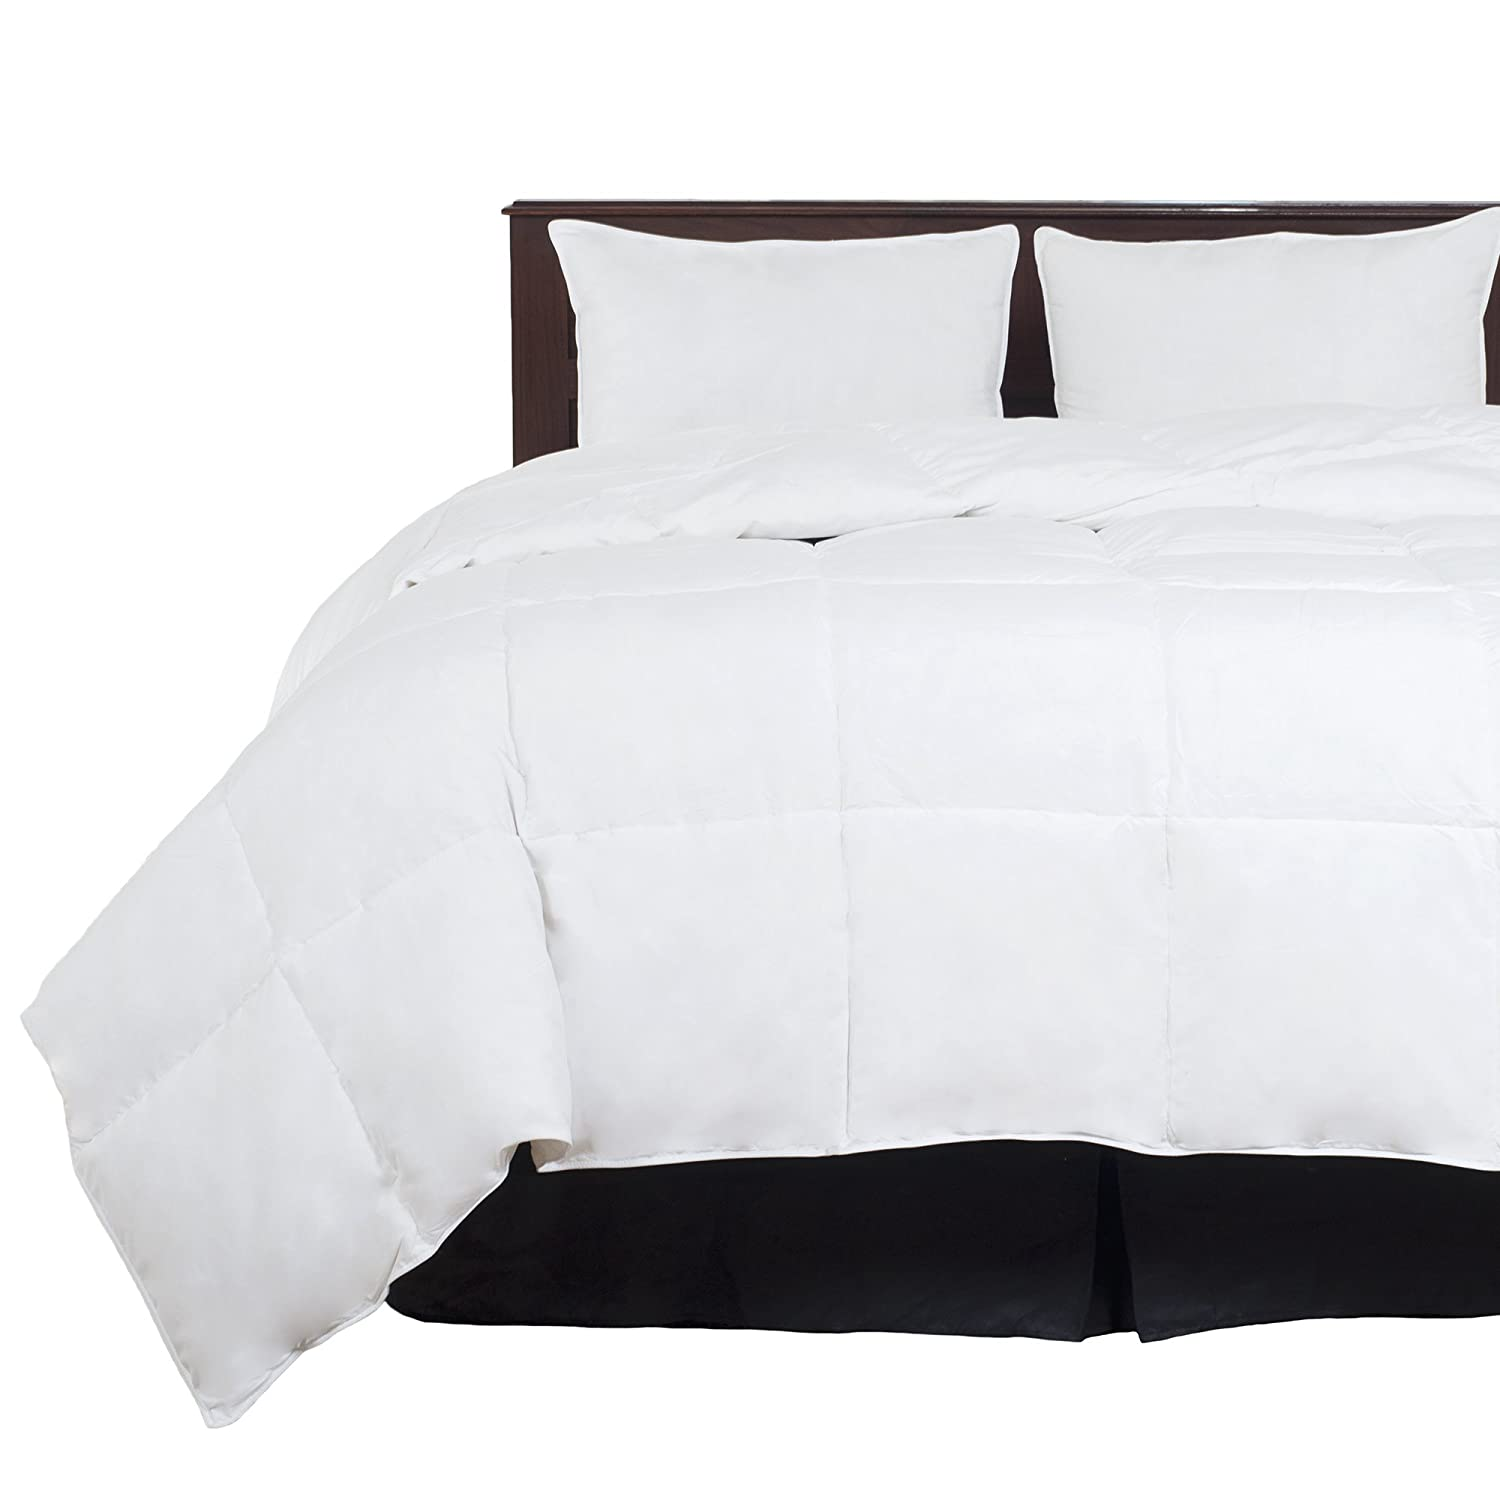 Amazon.com: Lavish Home Full/Queen Comforter, White Goose Down Alternative Comforter, Hypo-Allergenic, Quilted Box Stitched, All Season Bed Comforter: Home ...